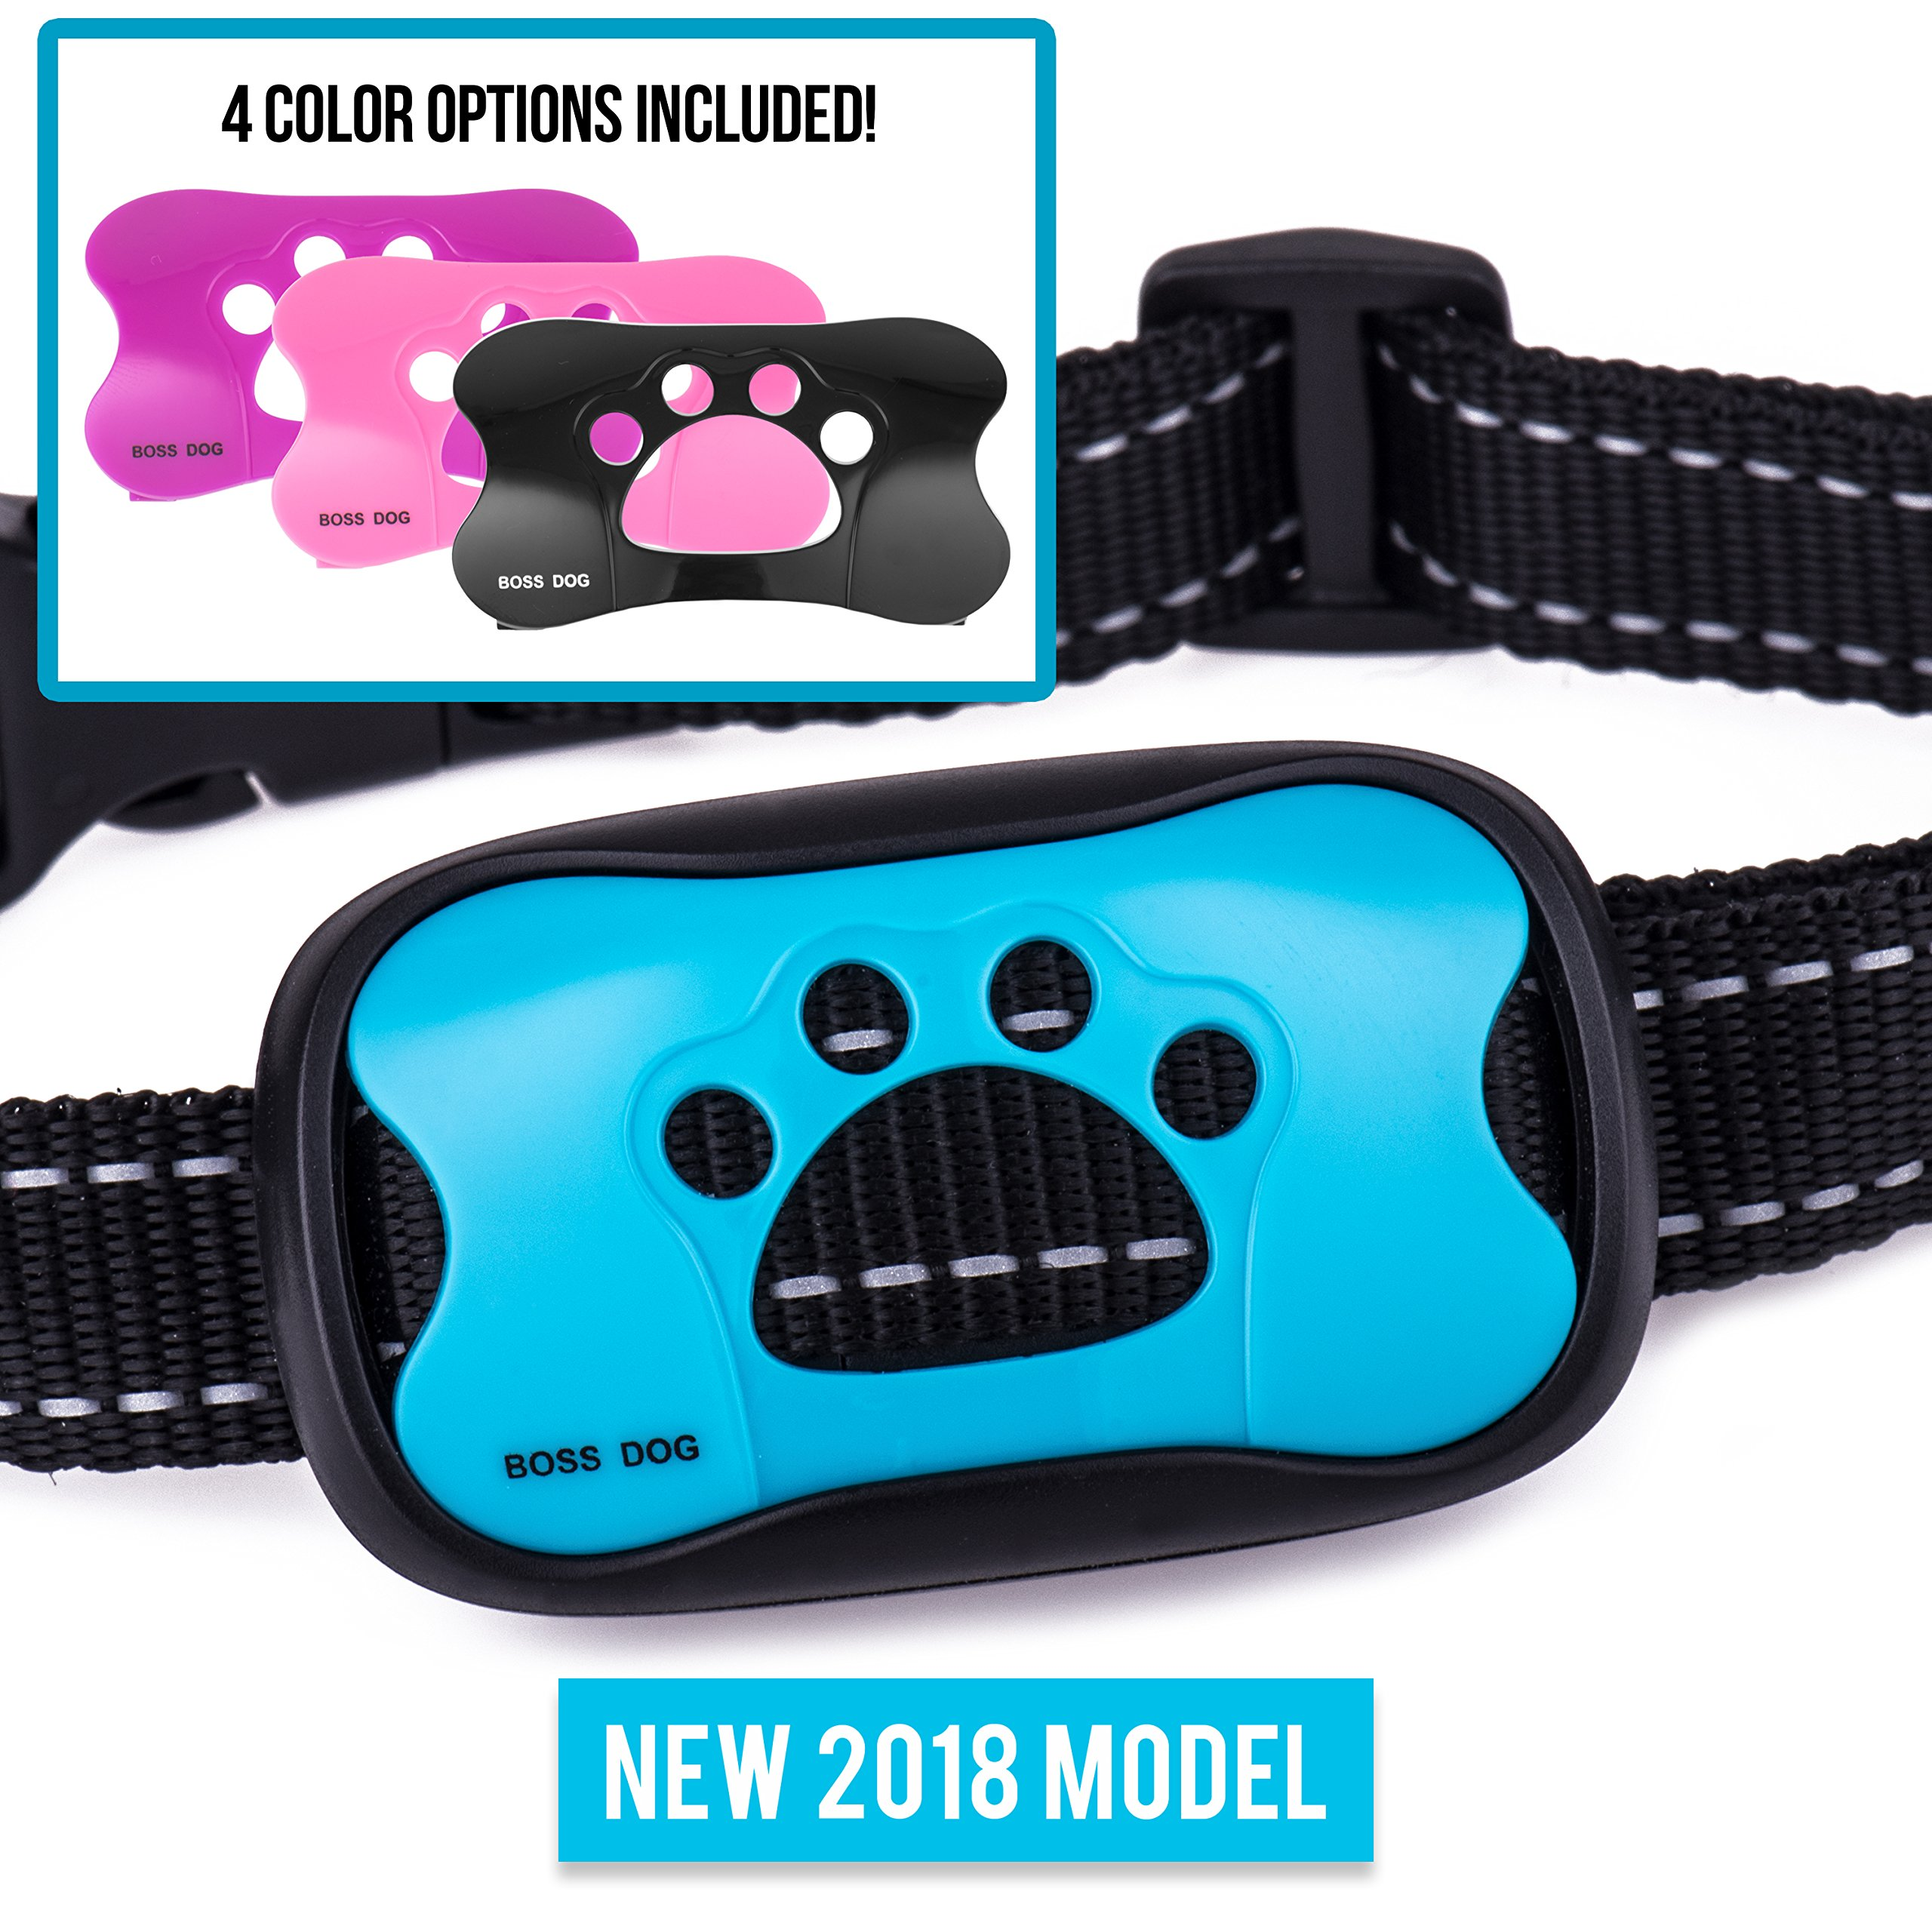 Guarantee2U Bark Collar Small Dog This Anti Barking Device Is For Petsafe Training no Shock or Citronella. Collars Control Dogs To Stop with Vibration and Beep. Deterrent is Waterproof Safe and Humane